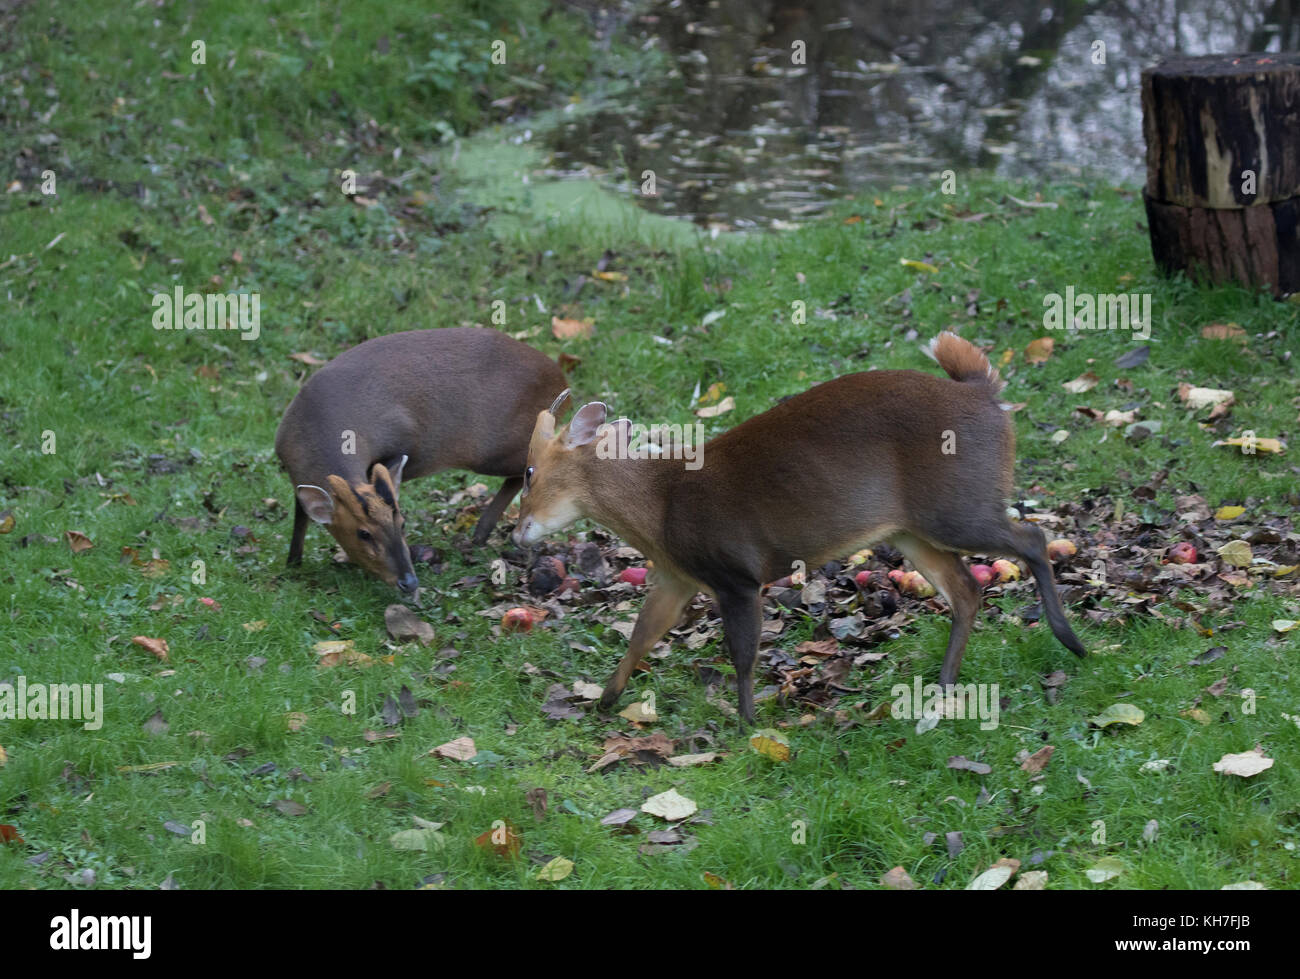 Male muntjac Muntiacus reevesi also called barking deer showing aggression towards young male - Stock Image